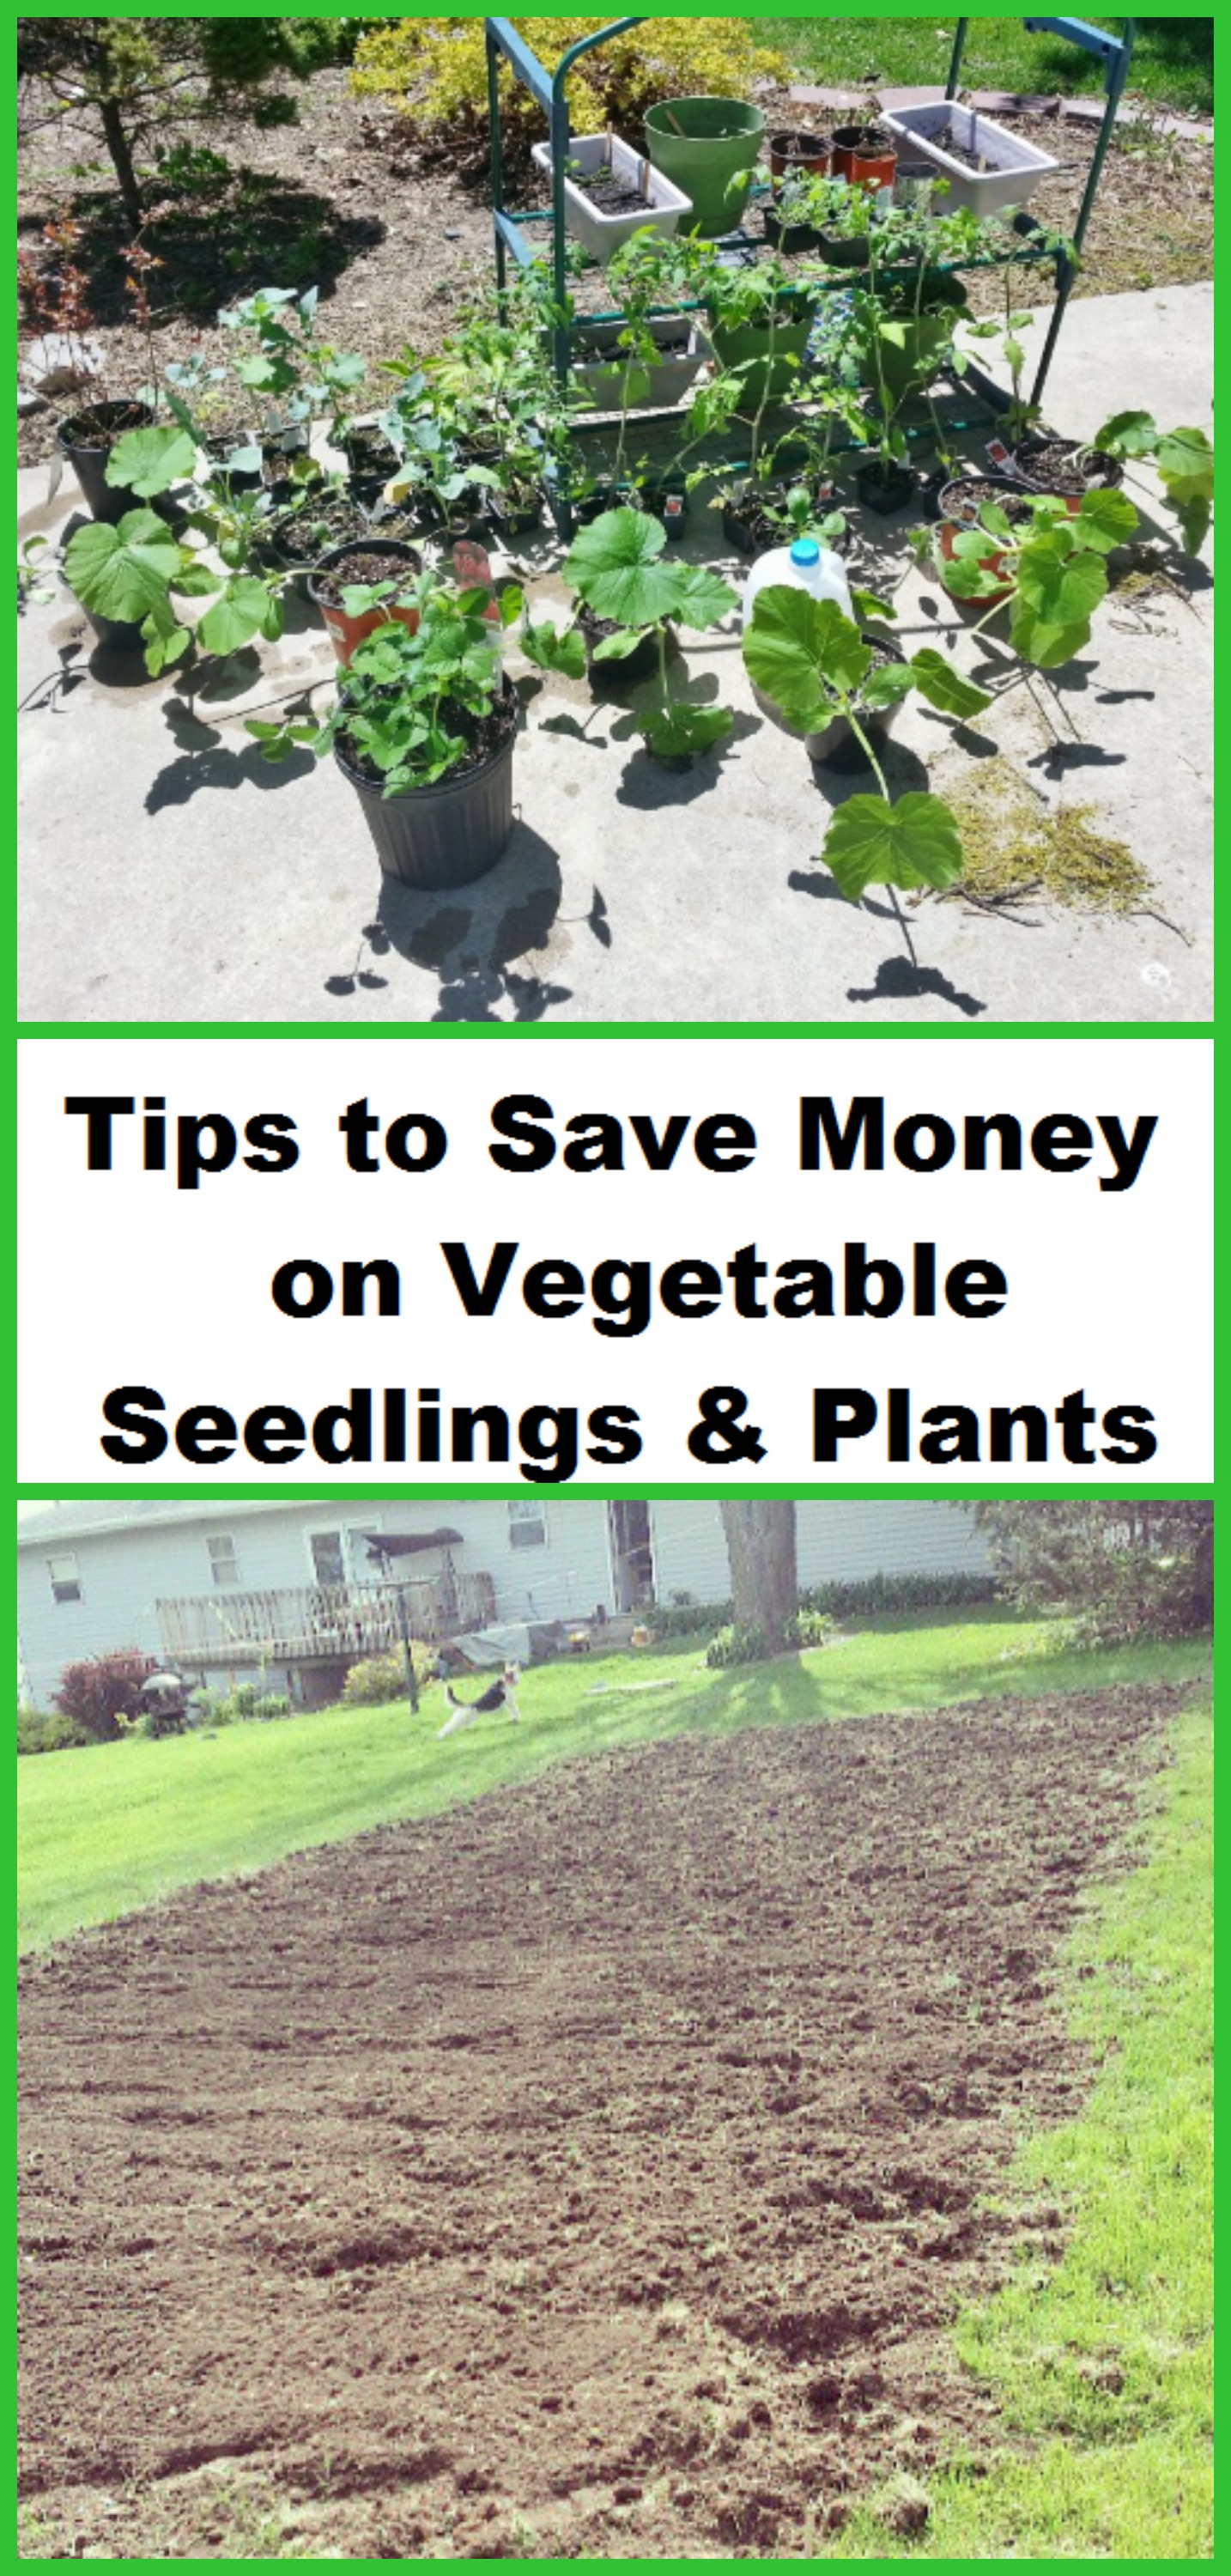 Tips to Save Money on Vegetable Seedlings and Plants